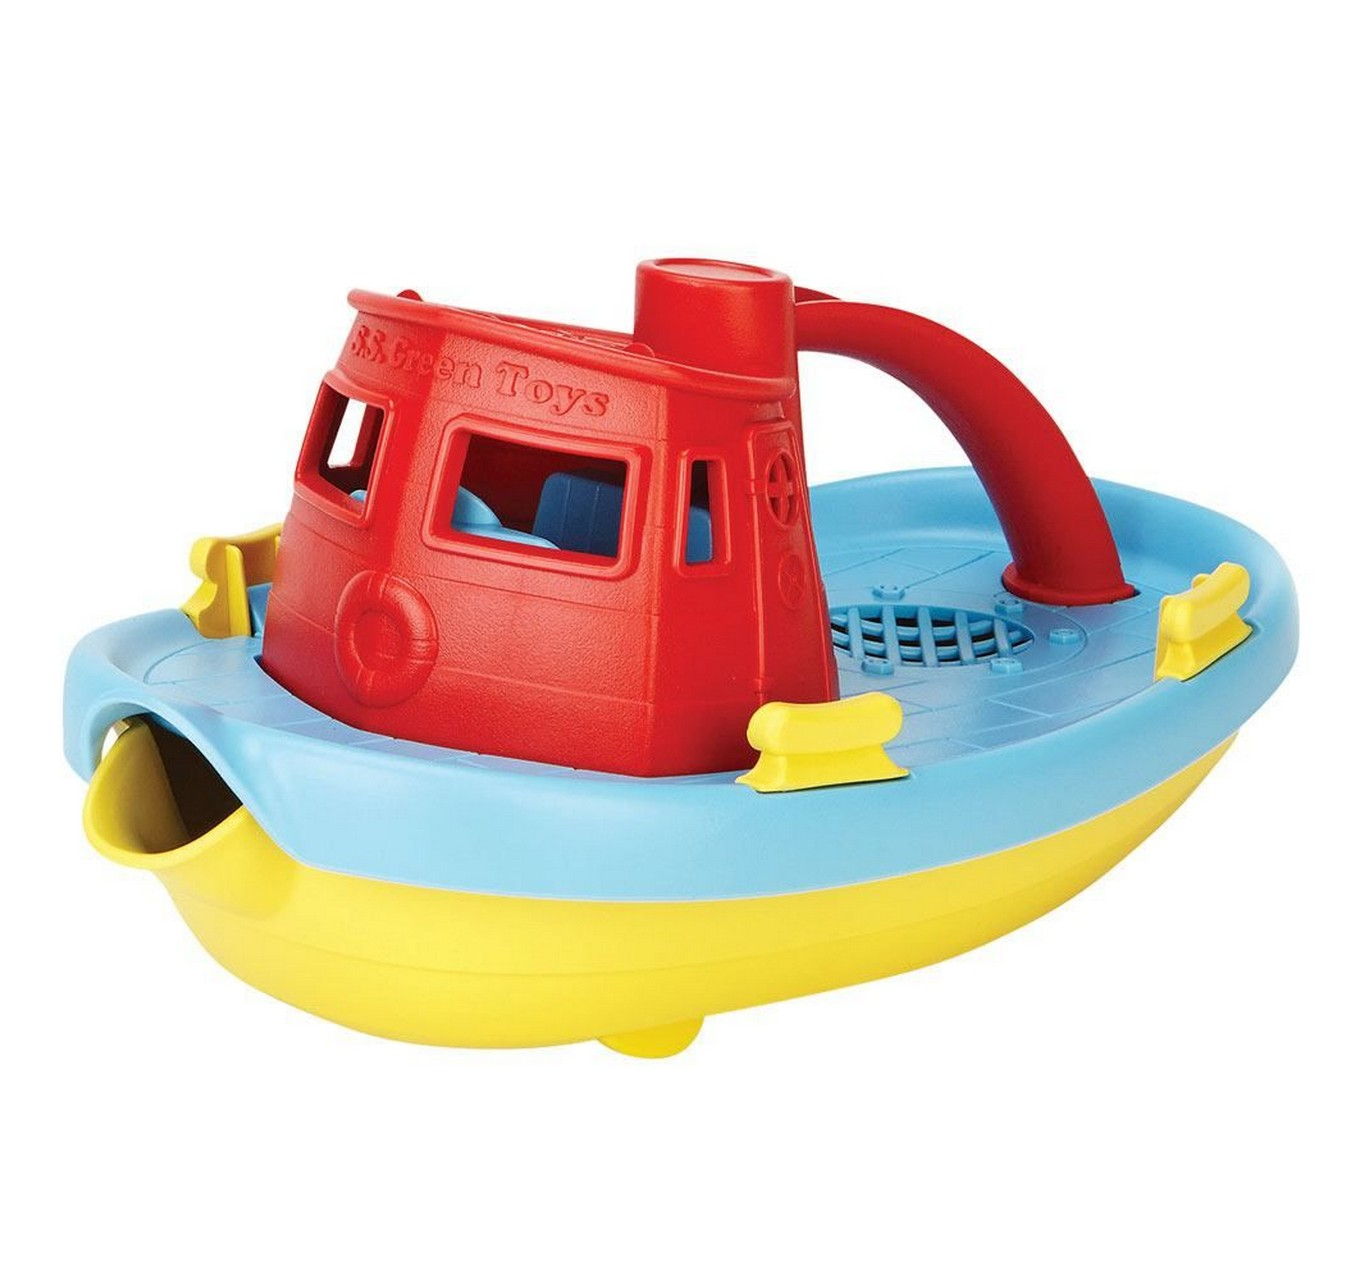 Tugboat - Red Handle